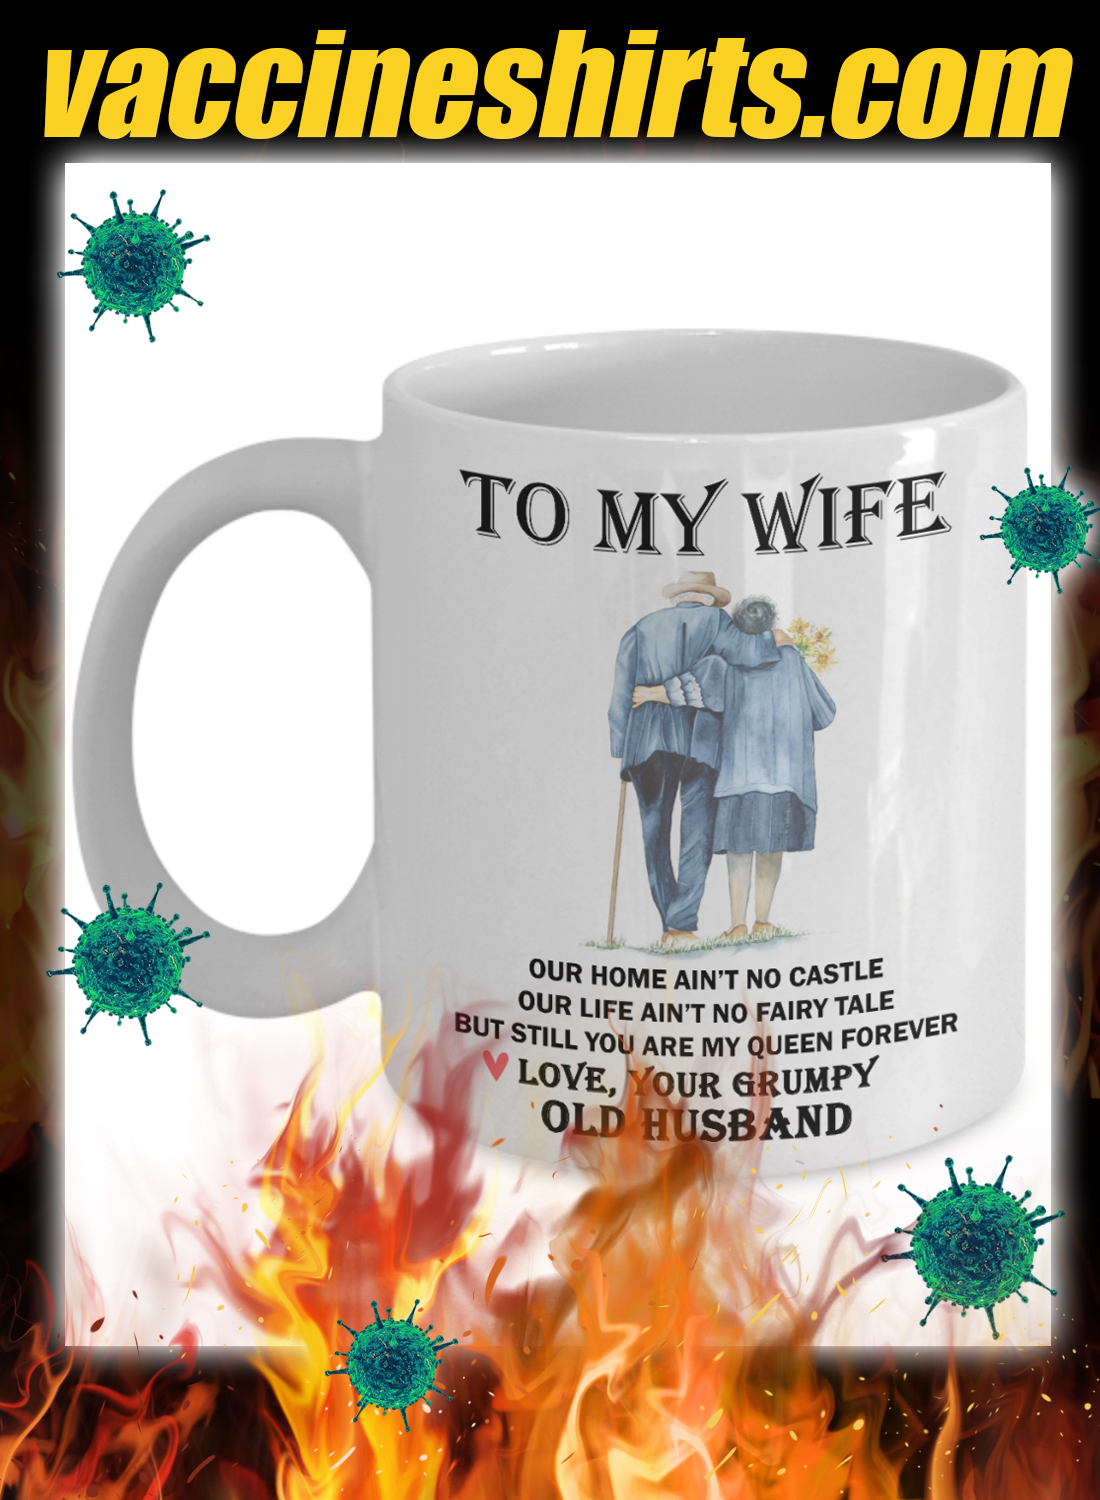 To my wife our home ain't no castle mug 1